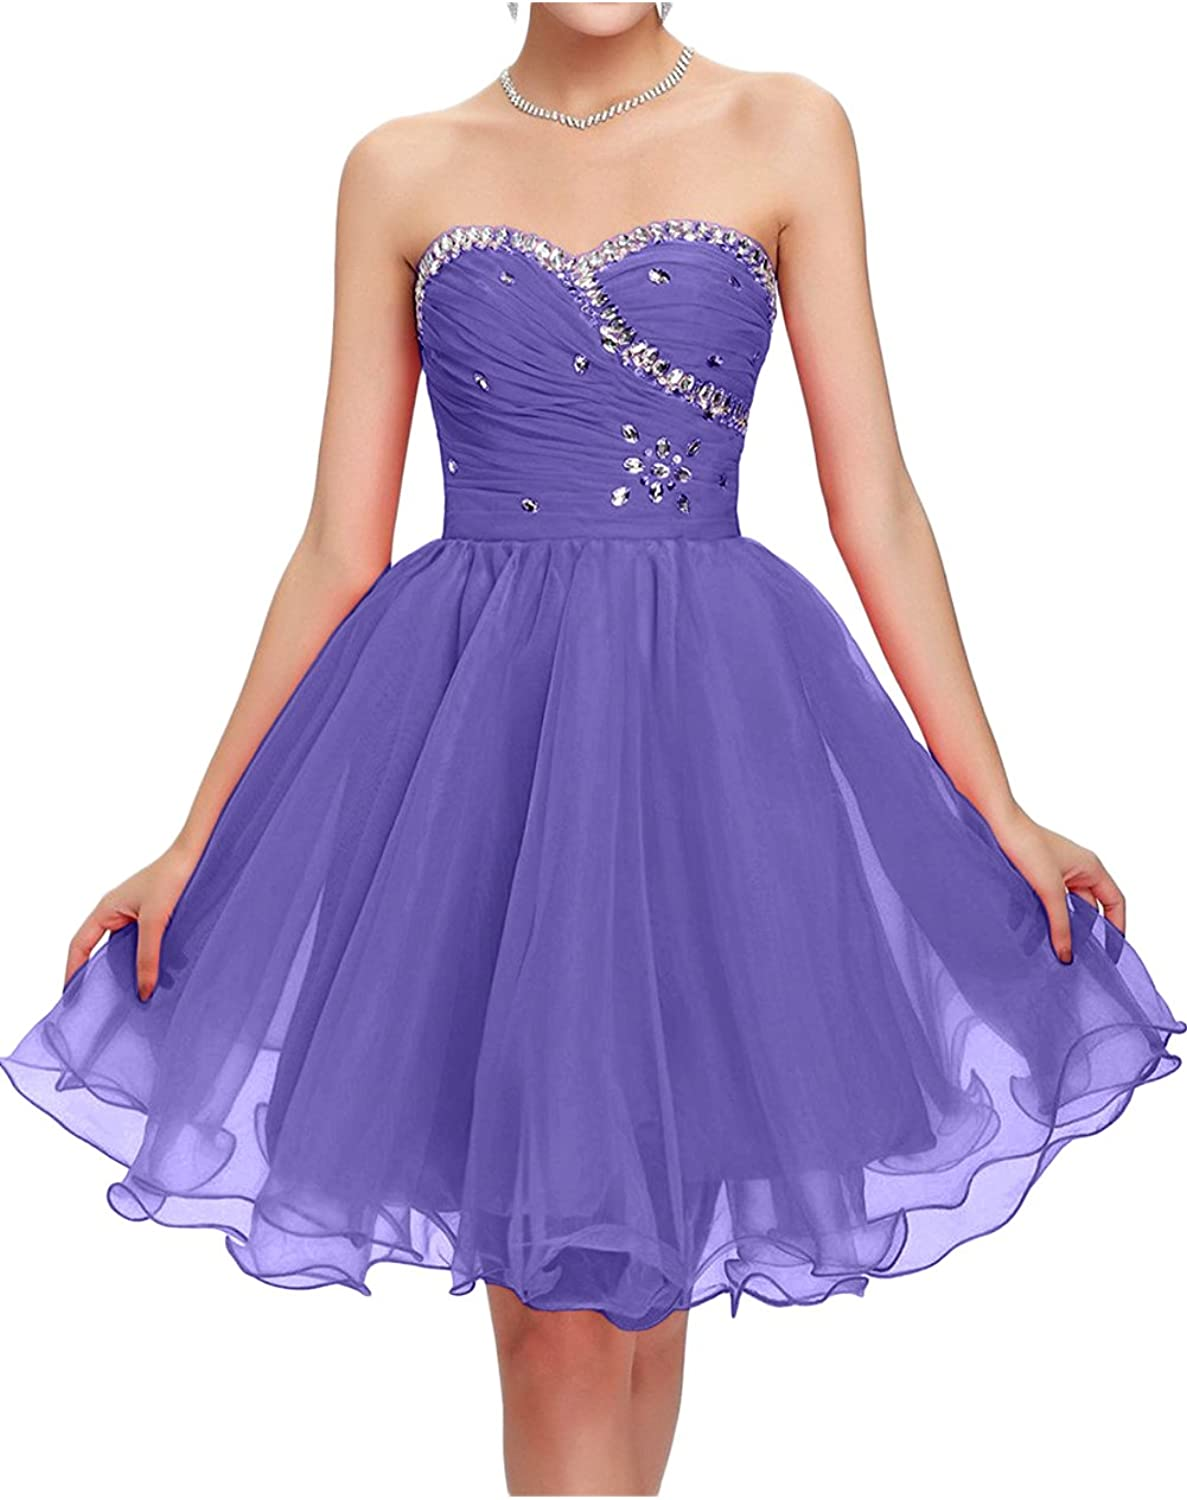 DressyMe Women's Tulle Cocktail Party Dresses Strapless Short Party Dress